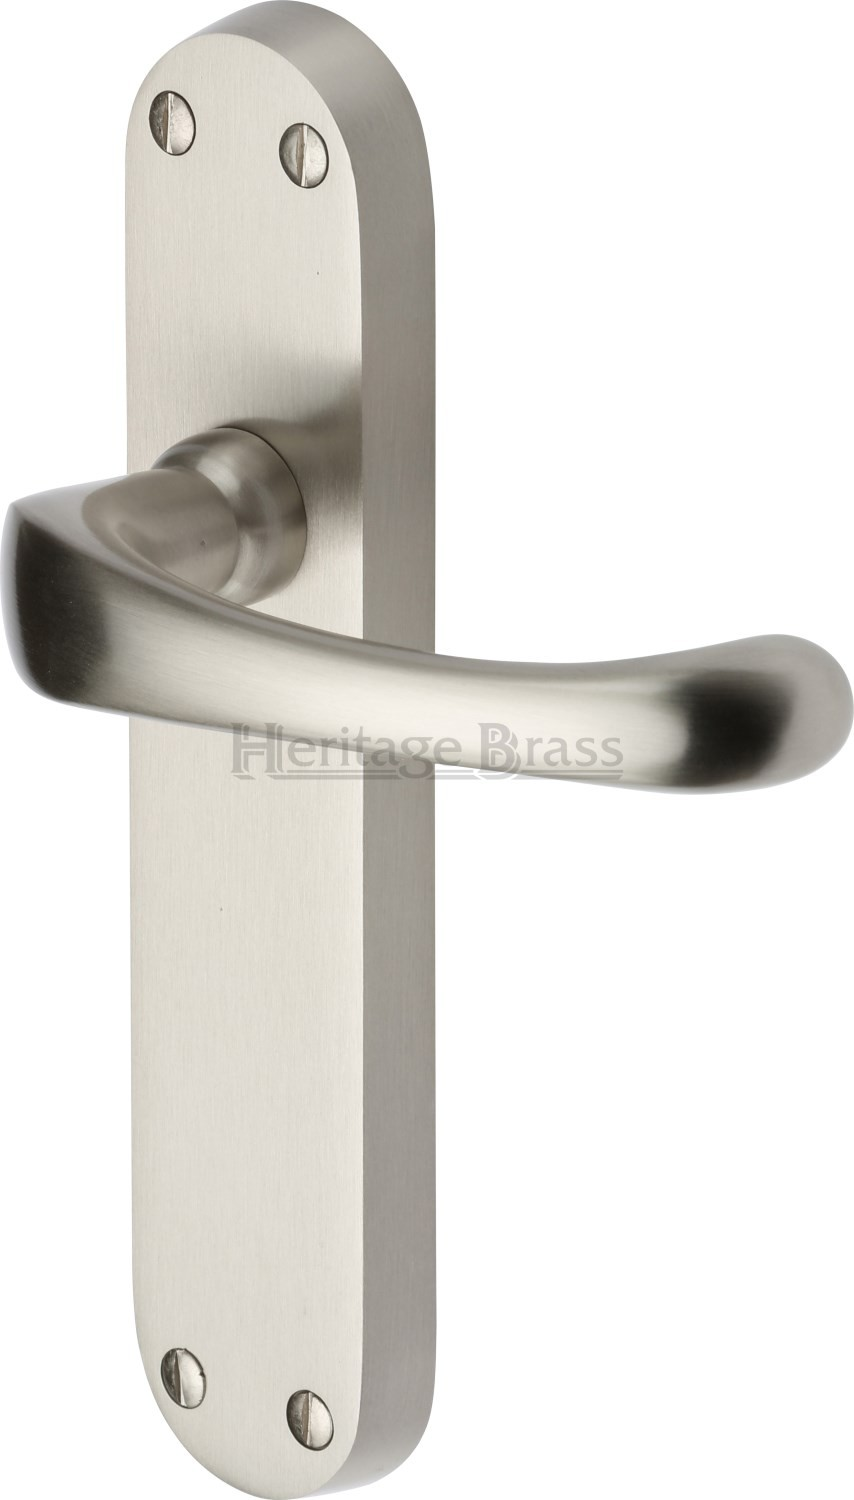 Closet Door Knobs | Brushed Nickel Door Knobs | Farmhouse Door Knobs